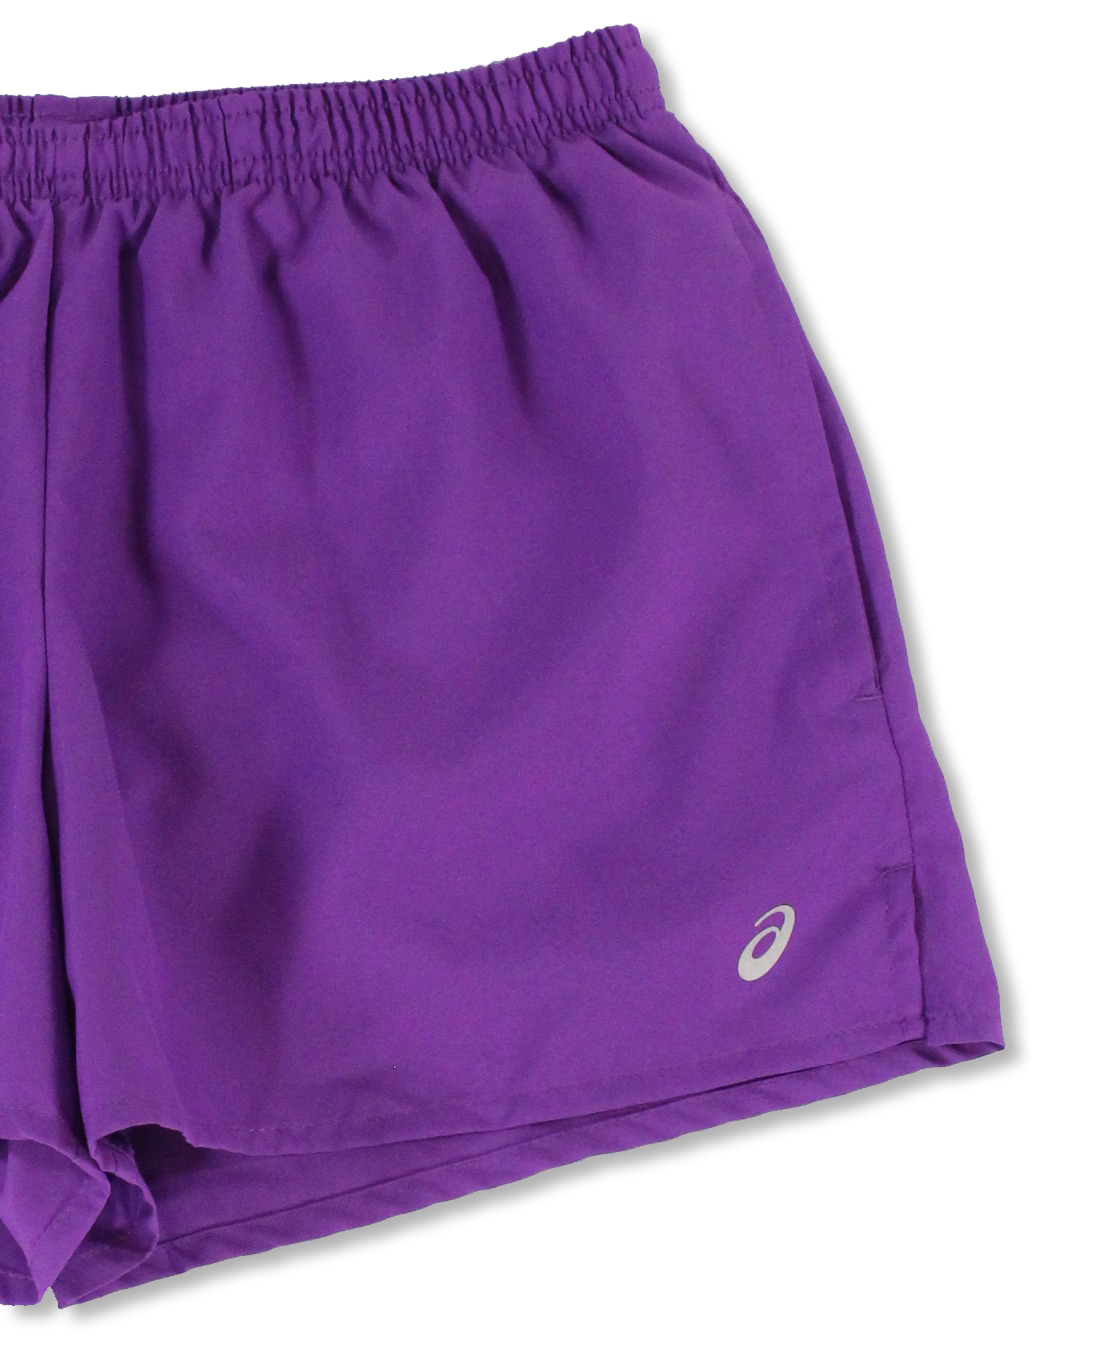 Asics-NEW-Solid-Women-039-s-Performance-Woven-Athletic-Shorts-30 thumbnail 8